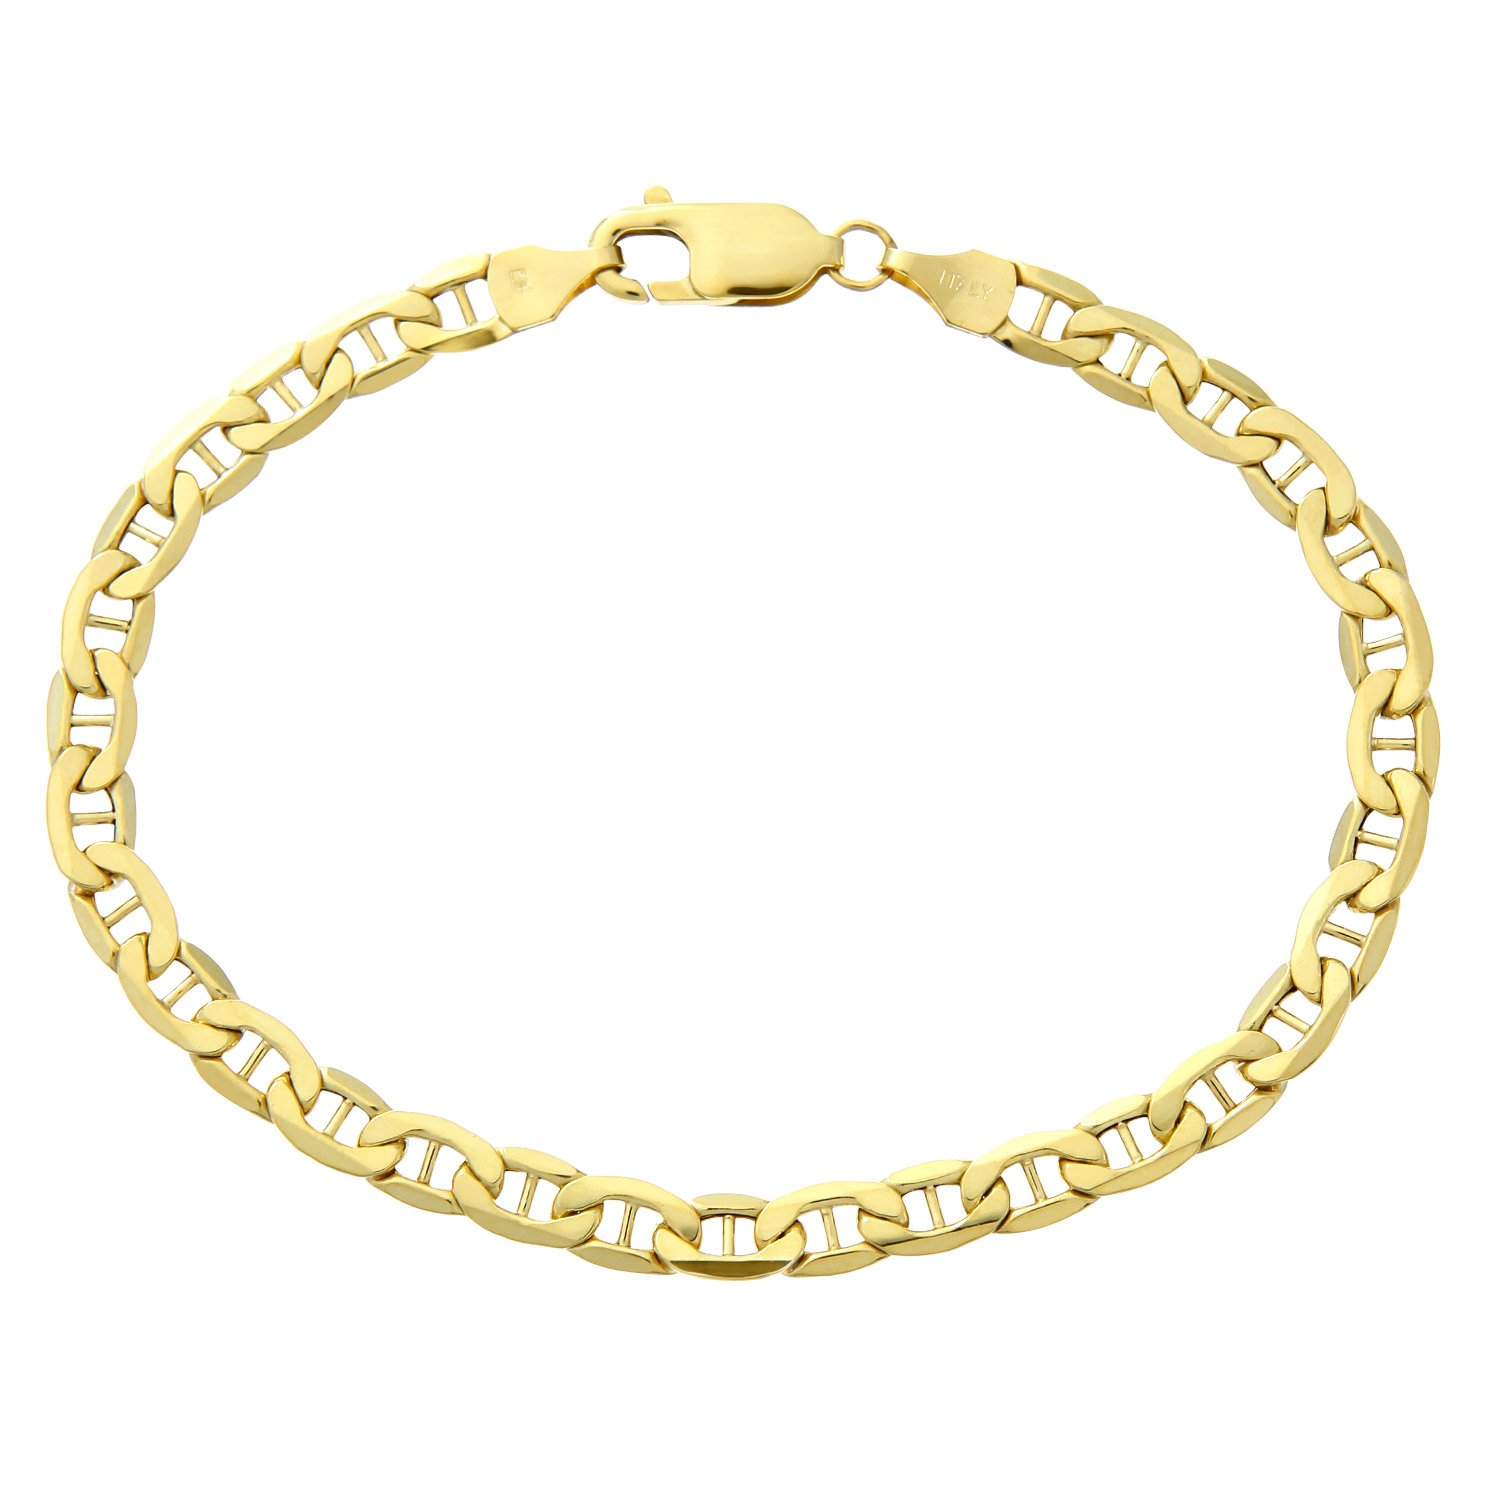 Citerna 7.5 inch/19 cm Length and 0.5 cm Width Anchor 9 ct Yellow Gold Bracelet